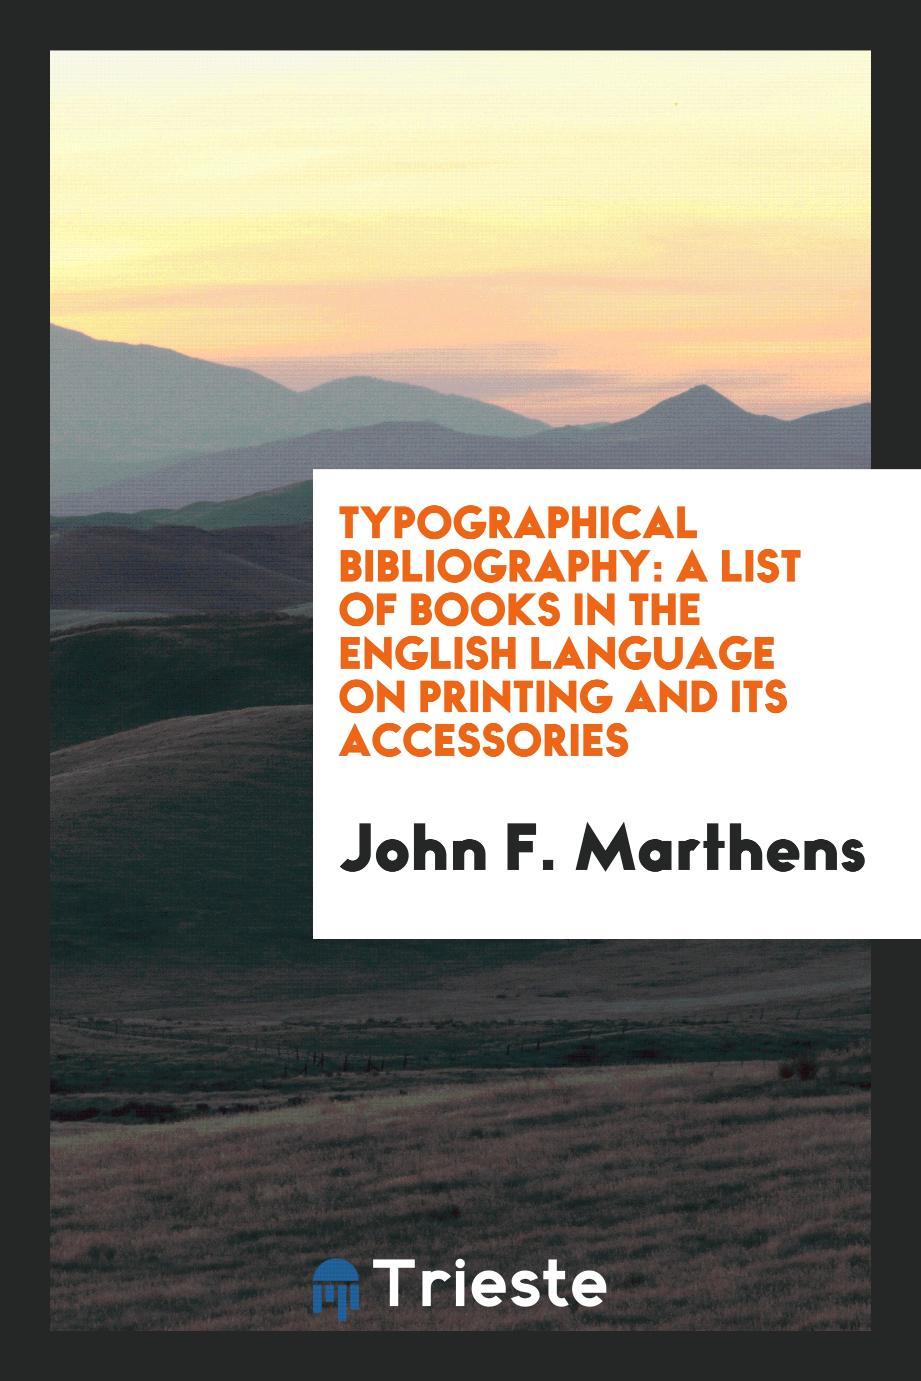 Typographical bibliography: a list of books in the English language on printing and its accessories